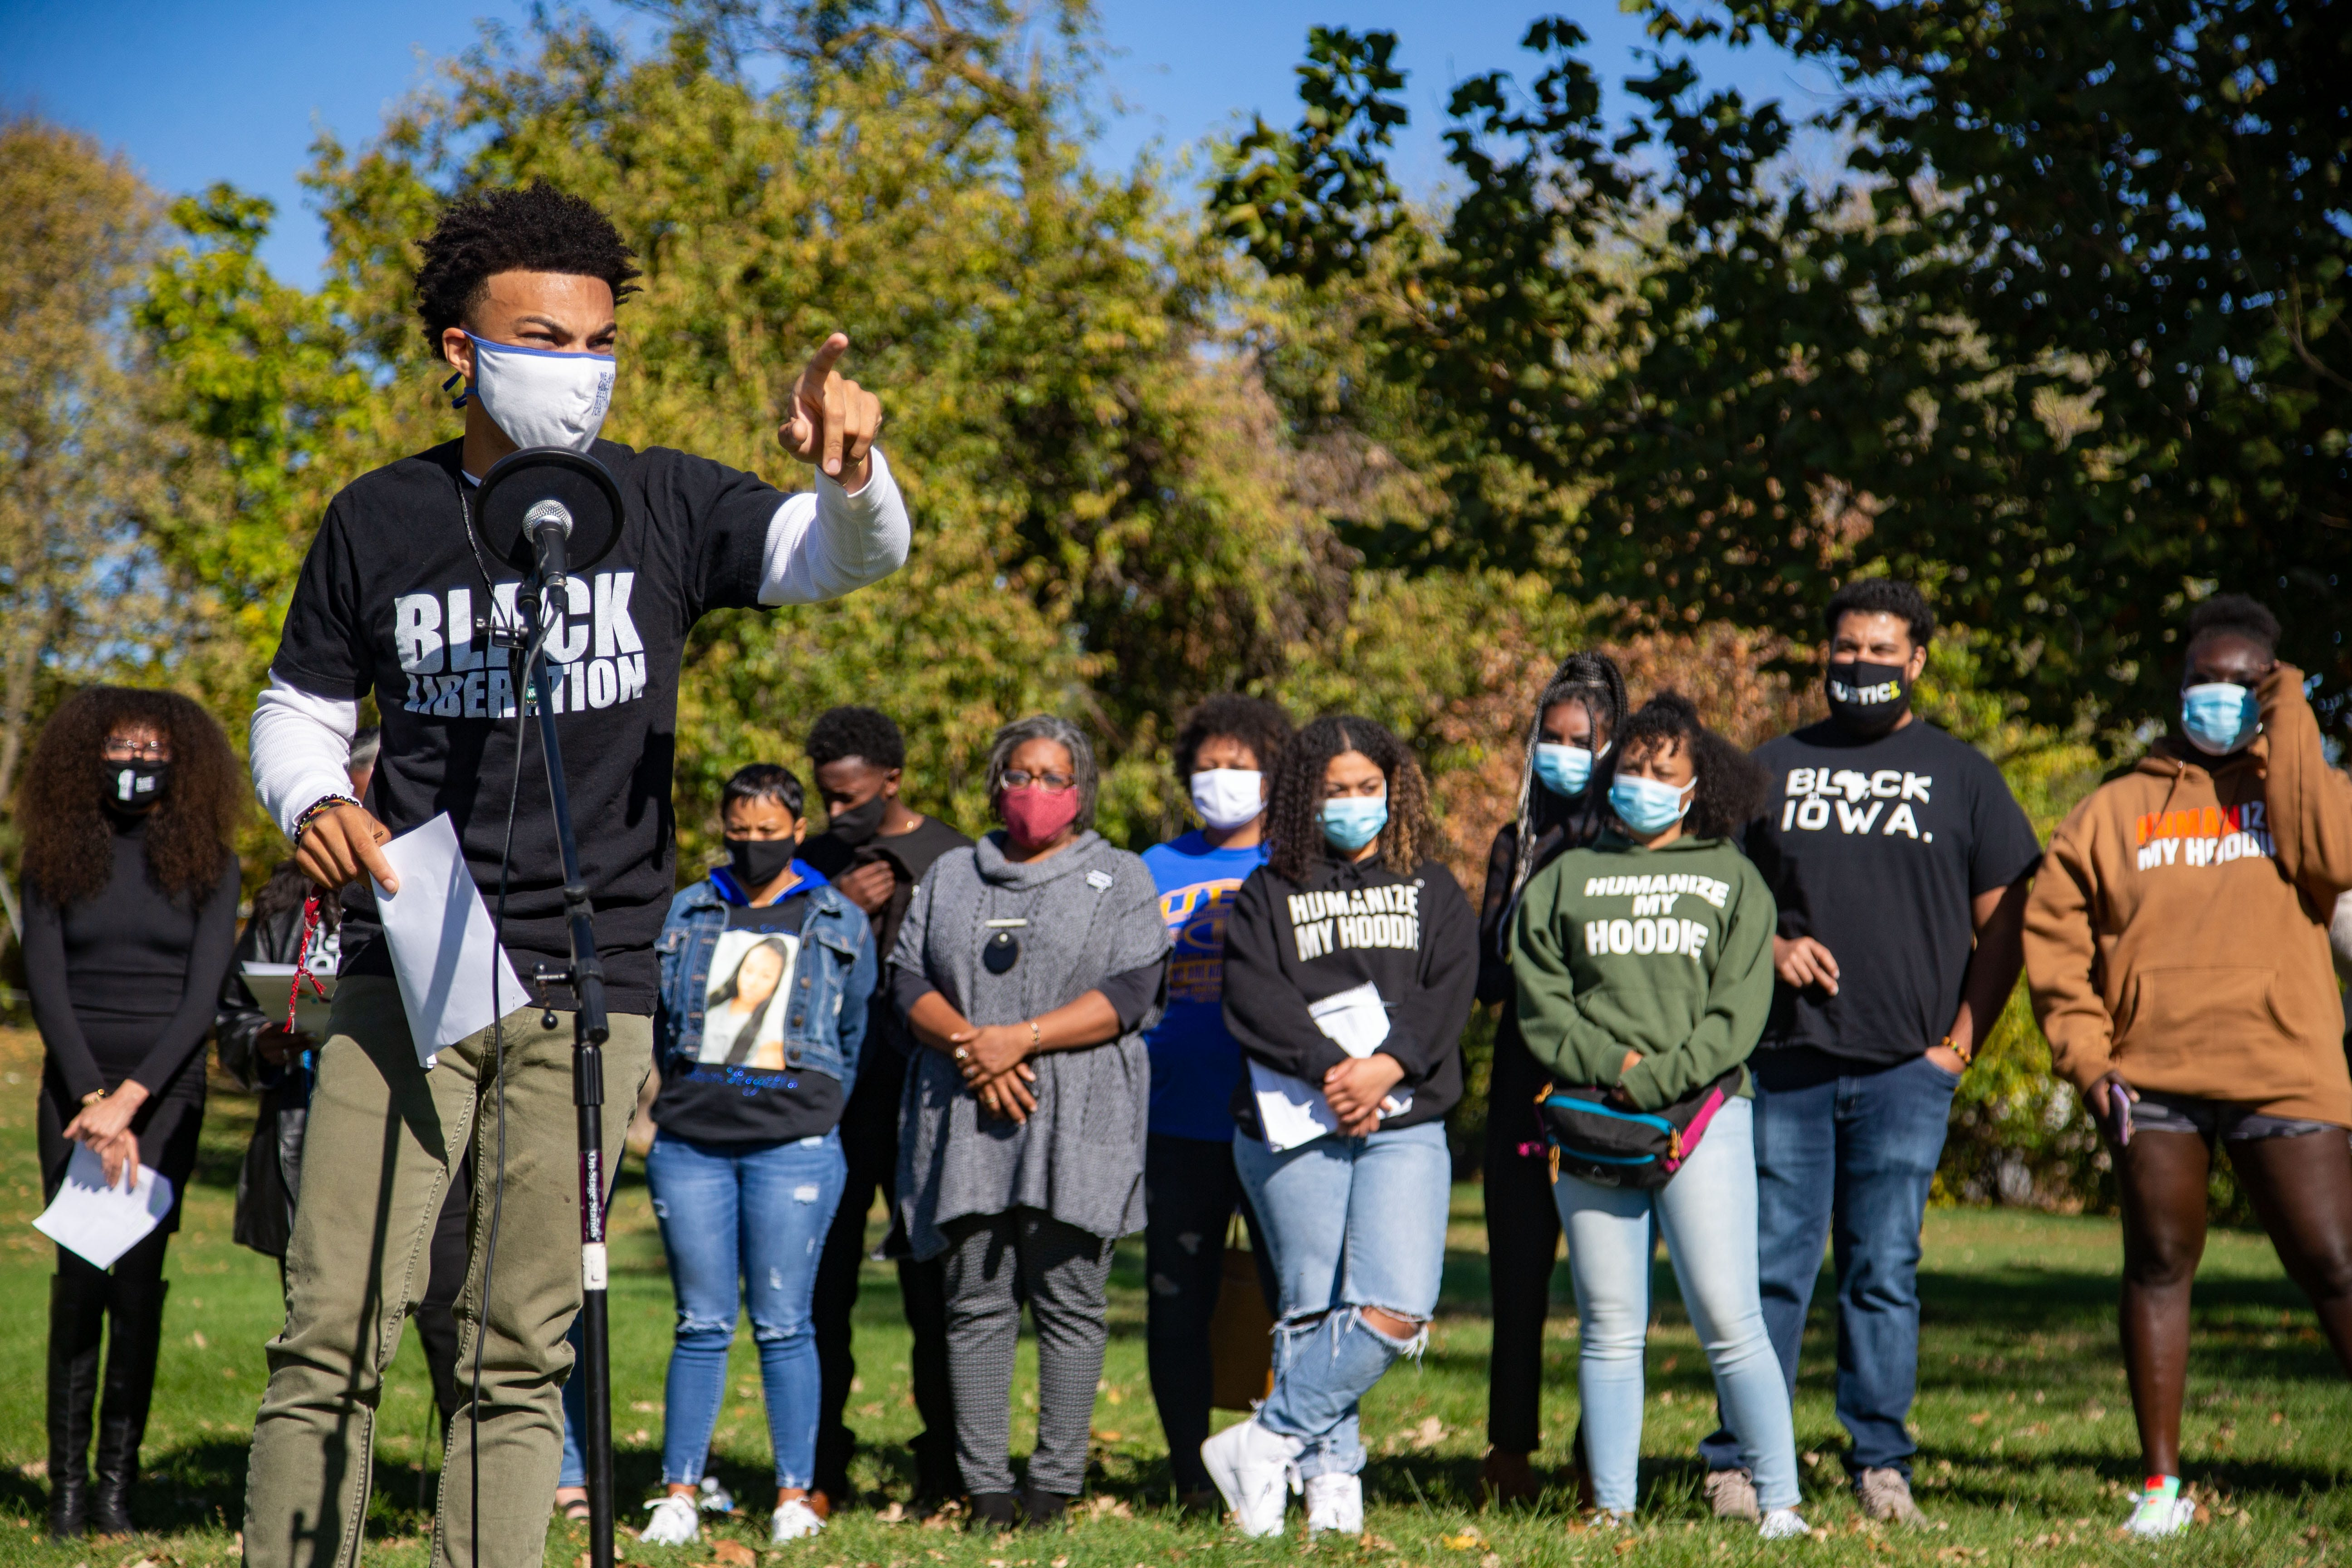 BLM organizer Matthew Bruce speaks during a press conference declaring a state of emergency for Black Iowans at Cheatom Park Tuesday, Oct. 13, 2020.